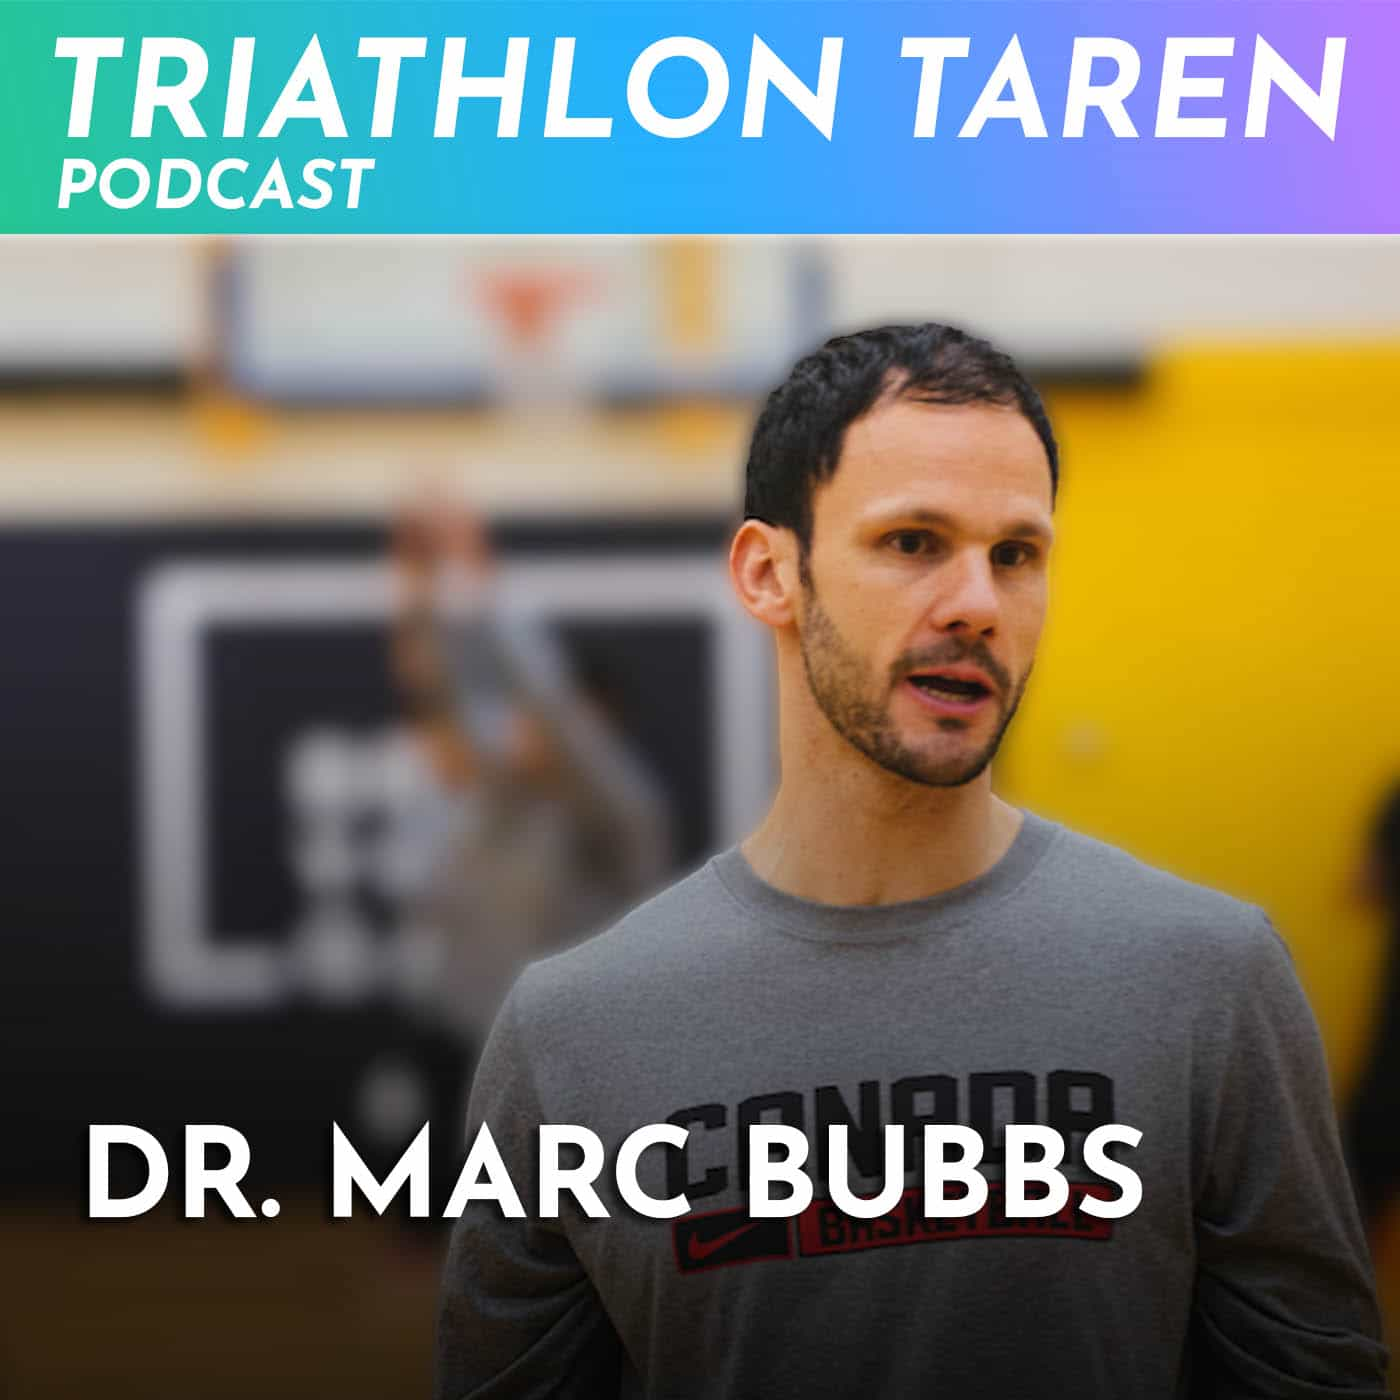 Become a Better Triathlete in 63 Minutes with Dr. Marc Bubbs